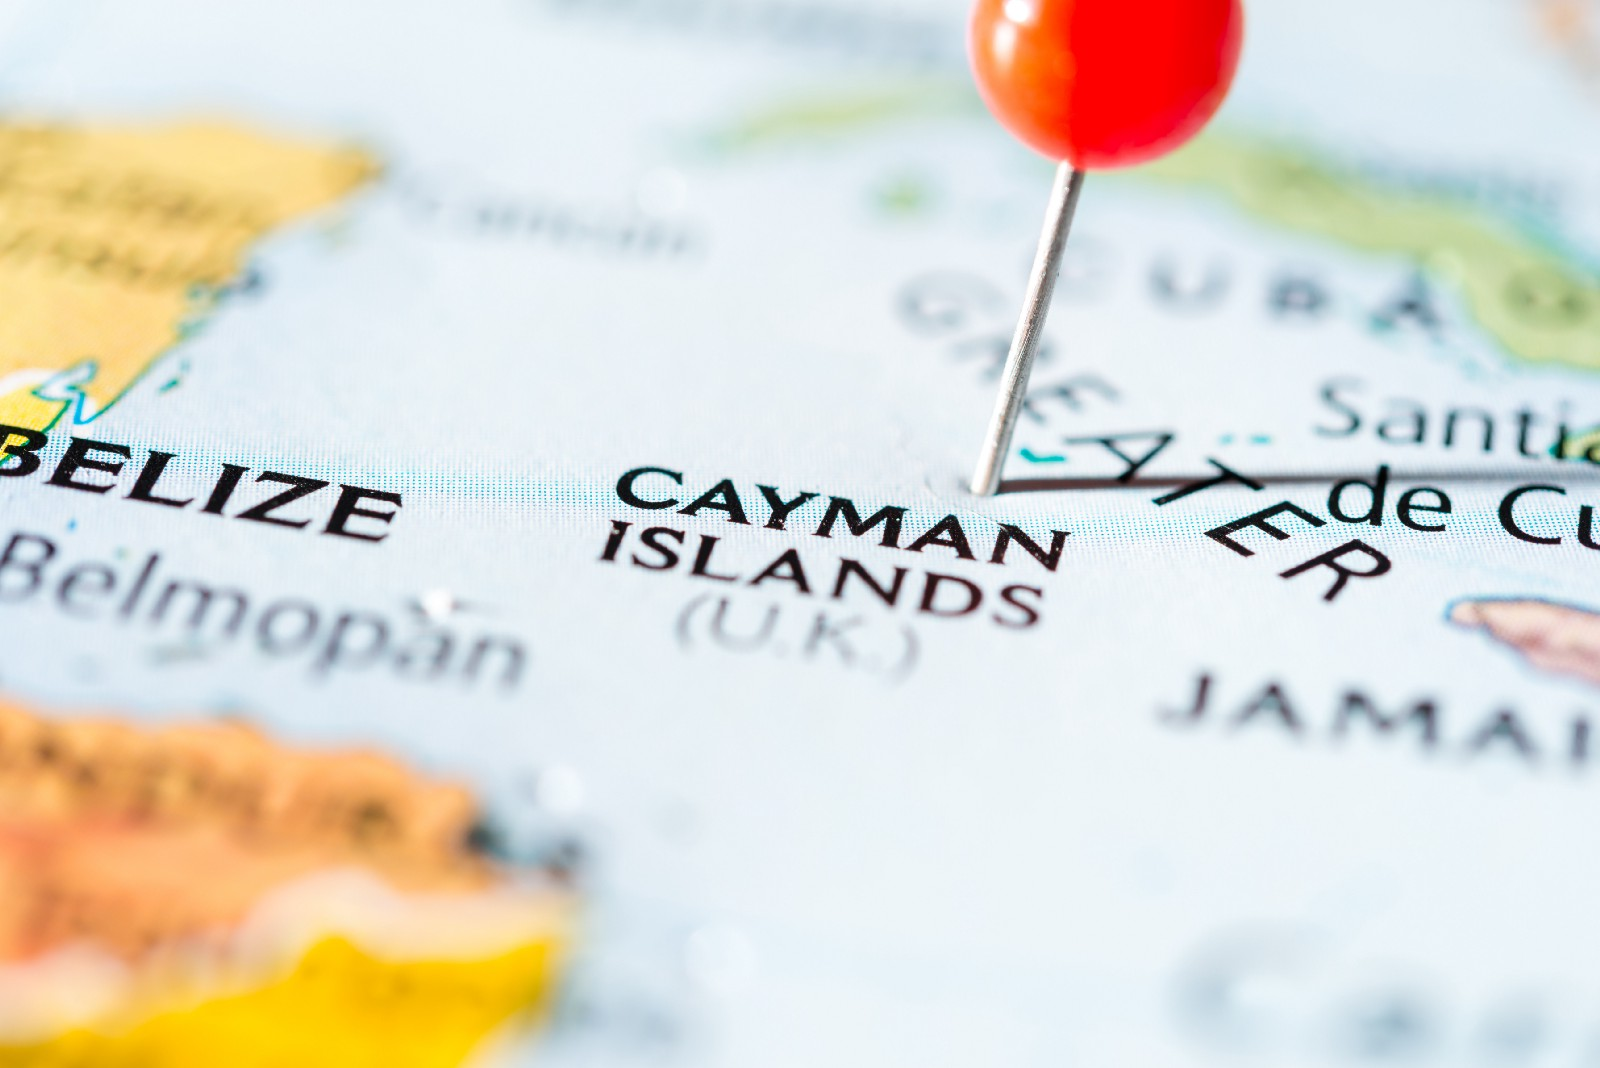 /the-cayman-islands-the-dream-jurisdiction-for-crypto-startups-448324c0046e feature image